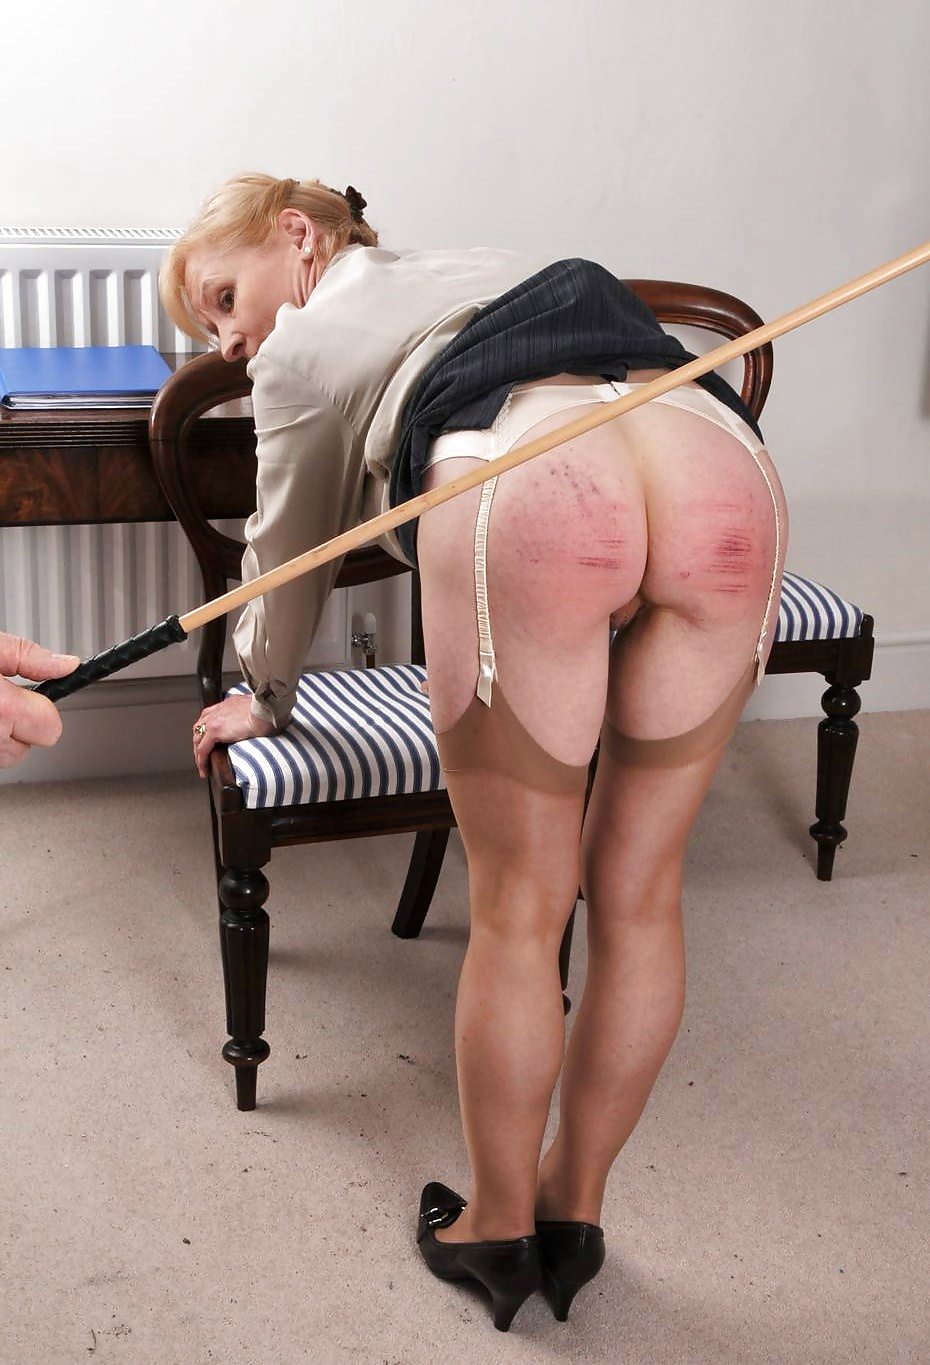 light-spanking-on-the-pussy